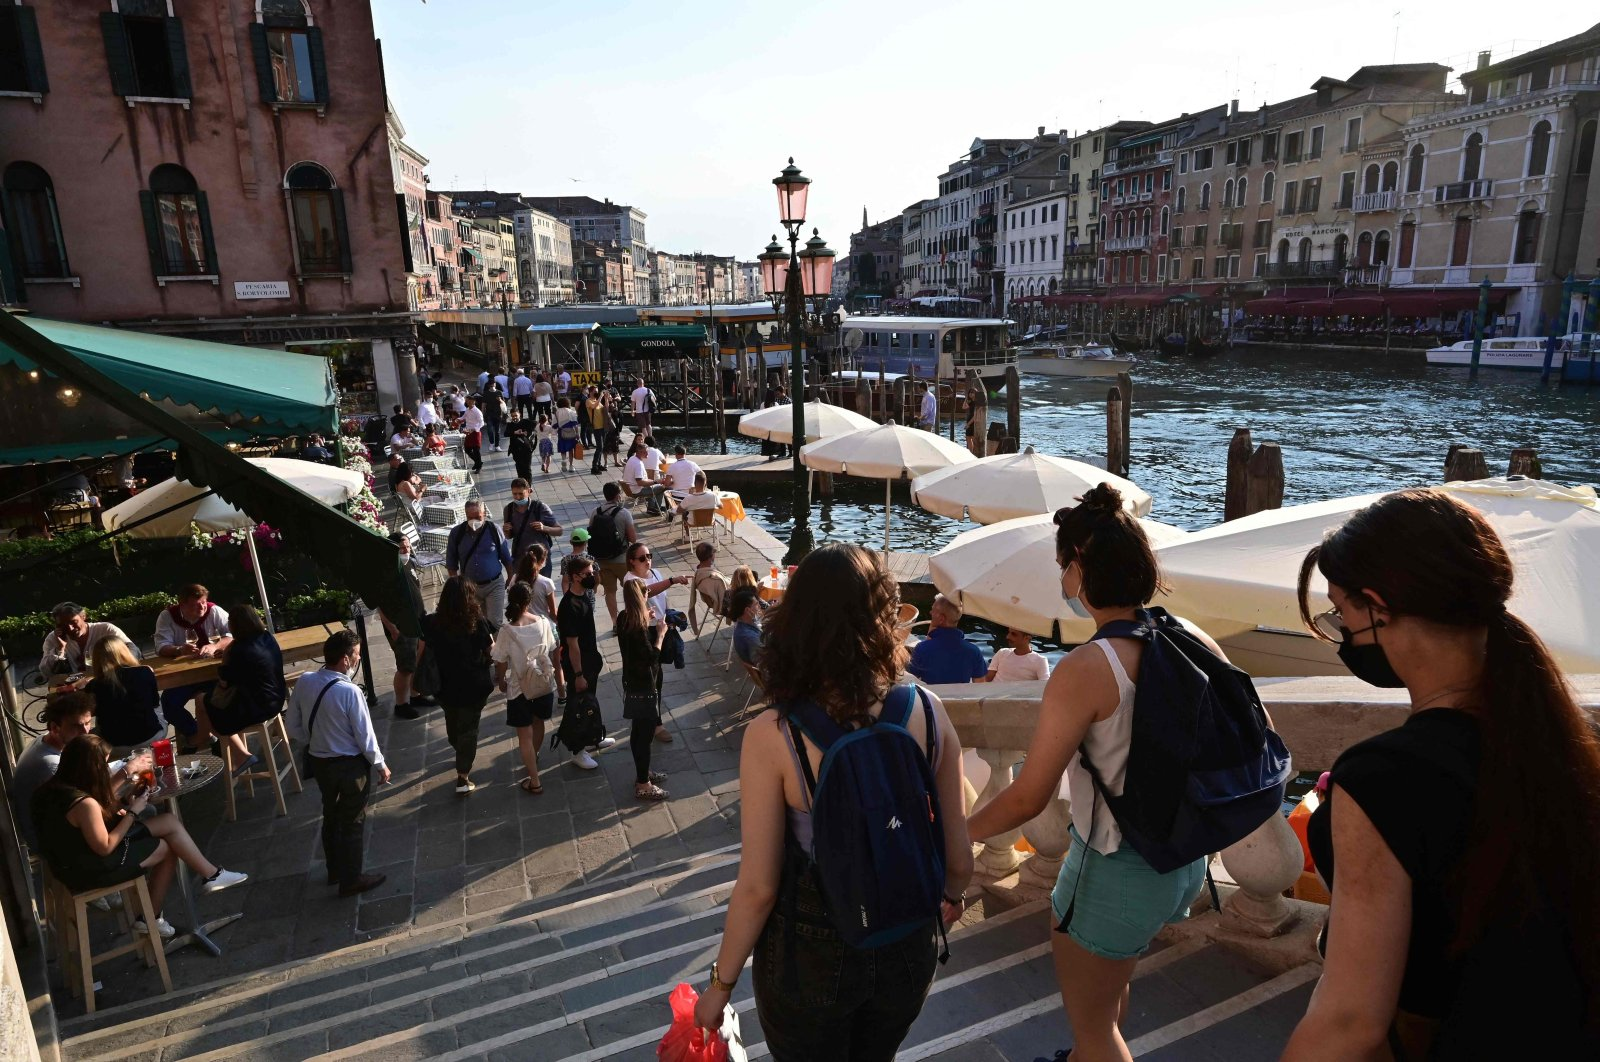 Tourists stroll alongside the Grand Canal in Venice, Italy, June 4, 2021. (Photo by Miguel Medina via AFP)